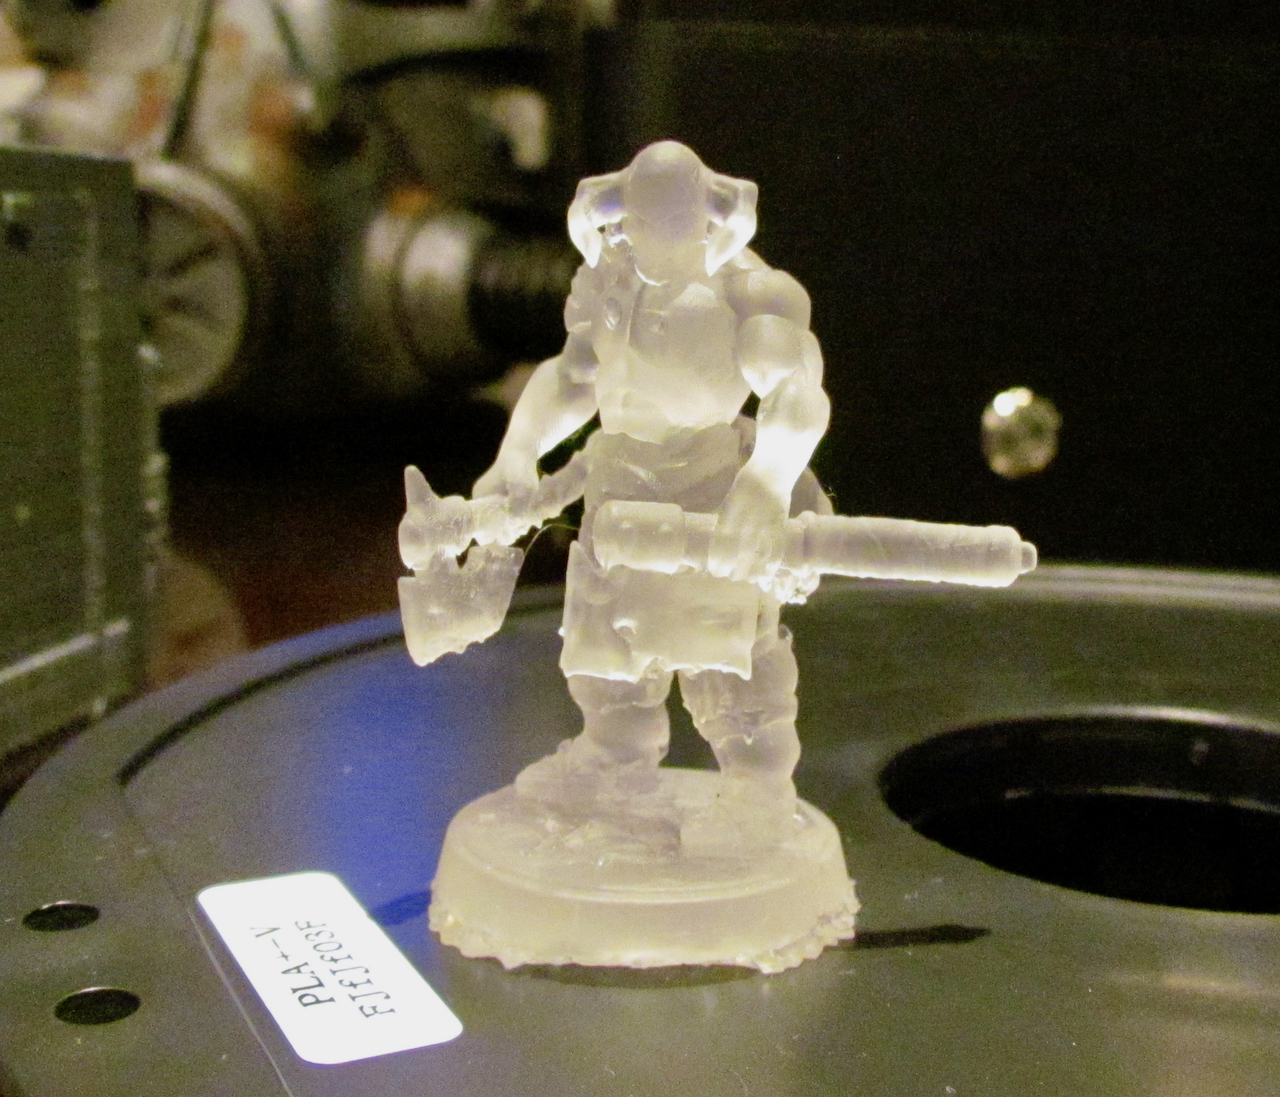 Sample 3D print from Monoprice's new low-cost resin 3D printer